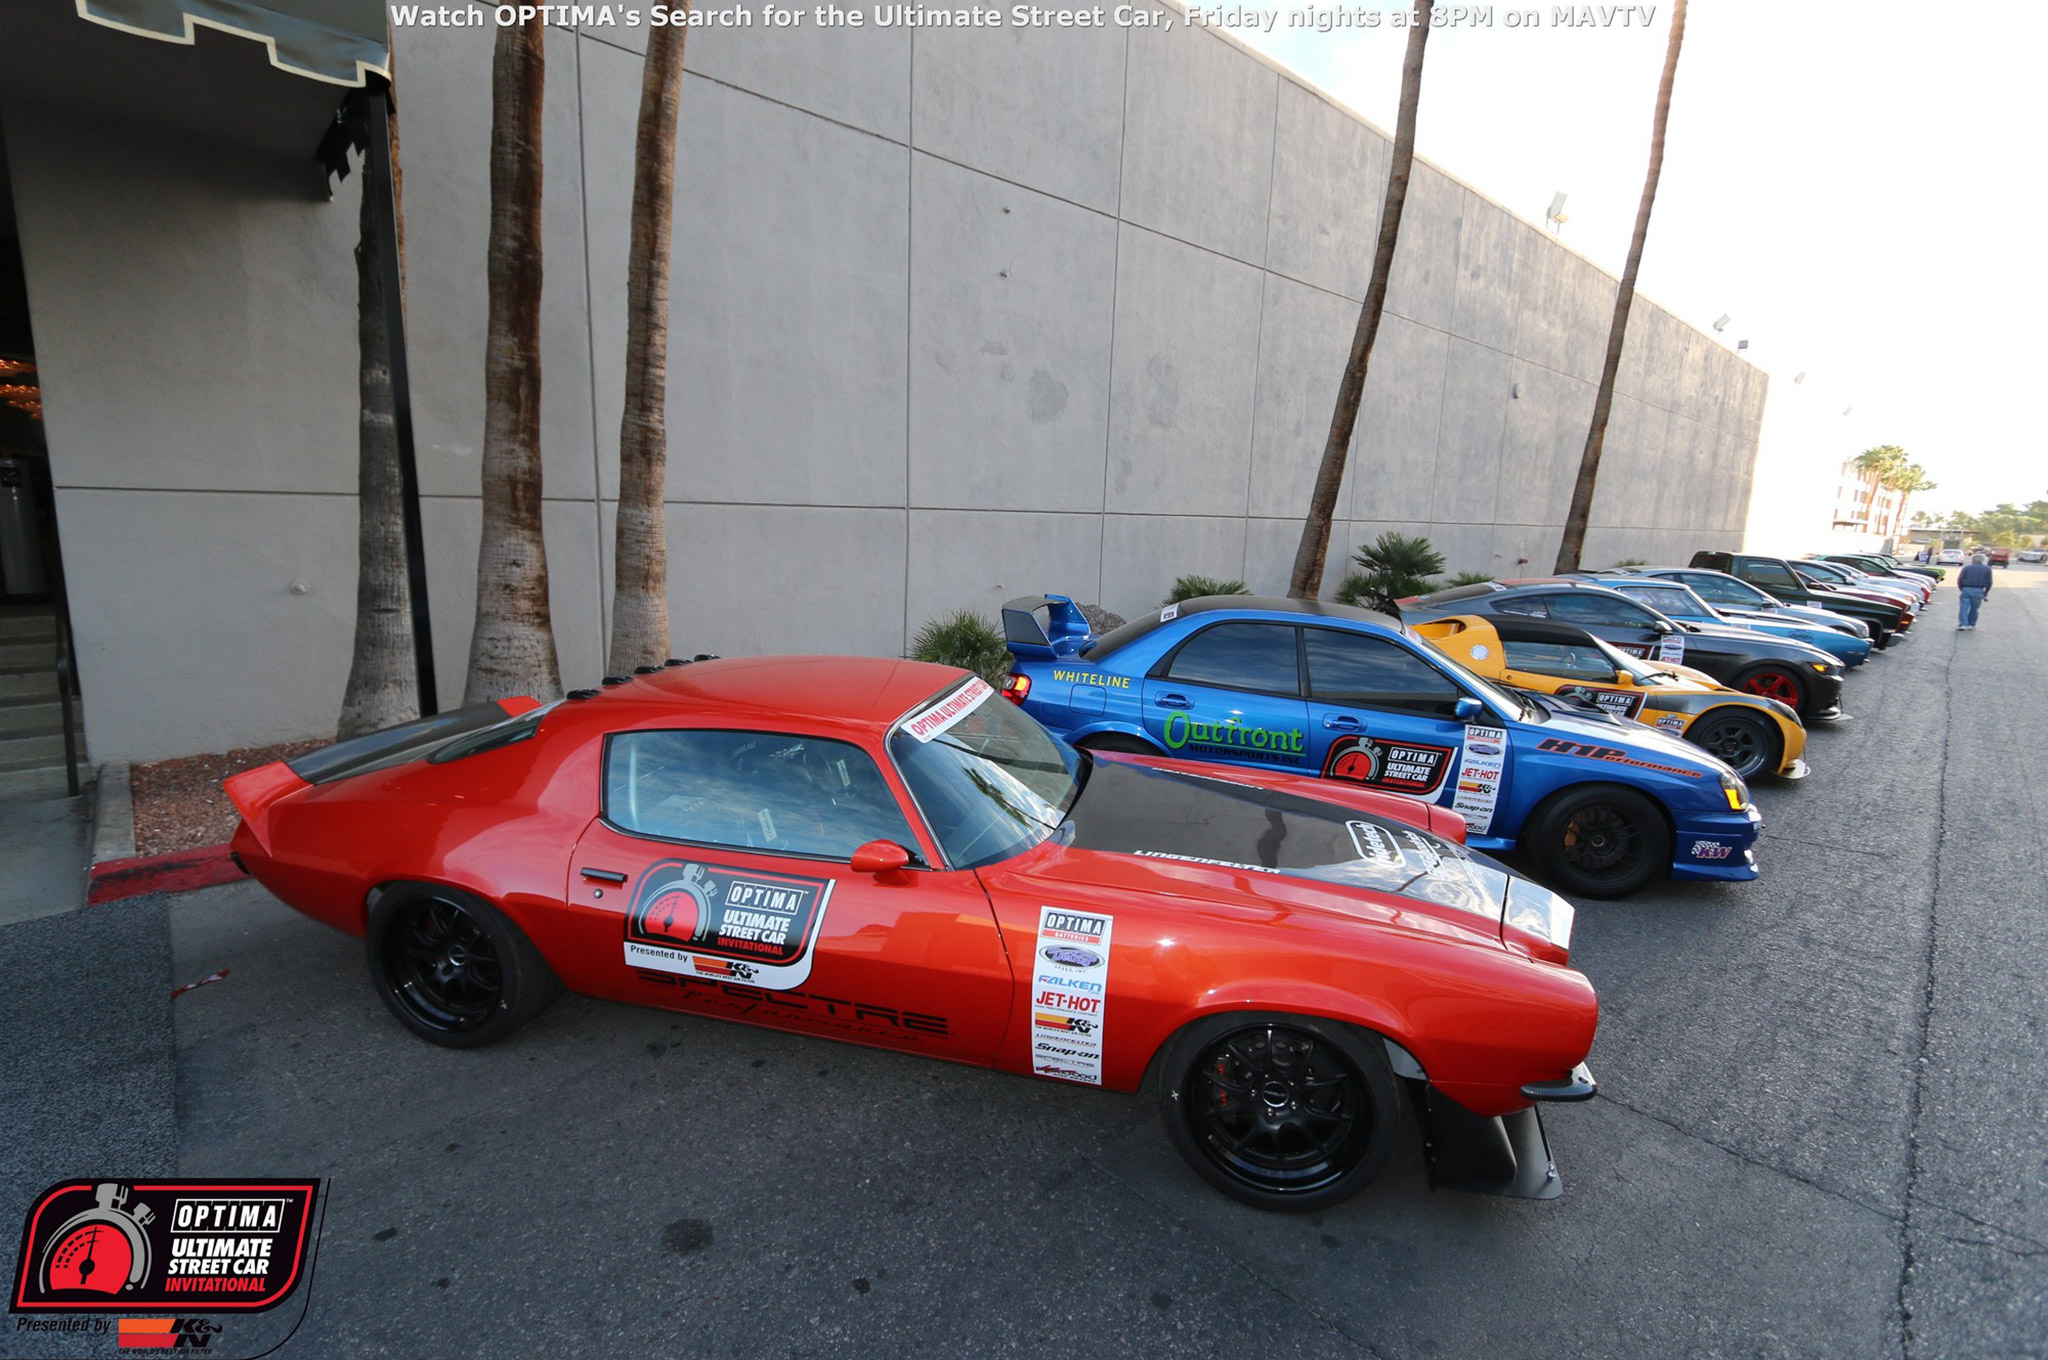 Every competitor that qualified for the OUSCI was guaranteed a spot in OPTIMA Alley at the SEMA show, a valuable perk that makes sponsors happy!